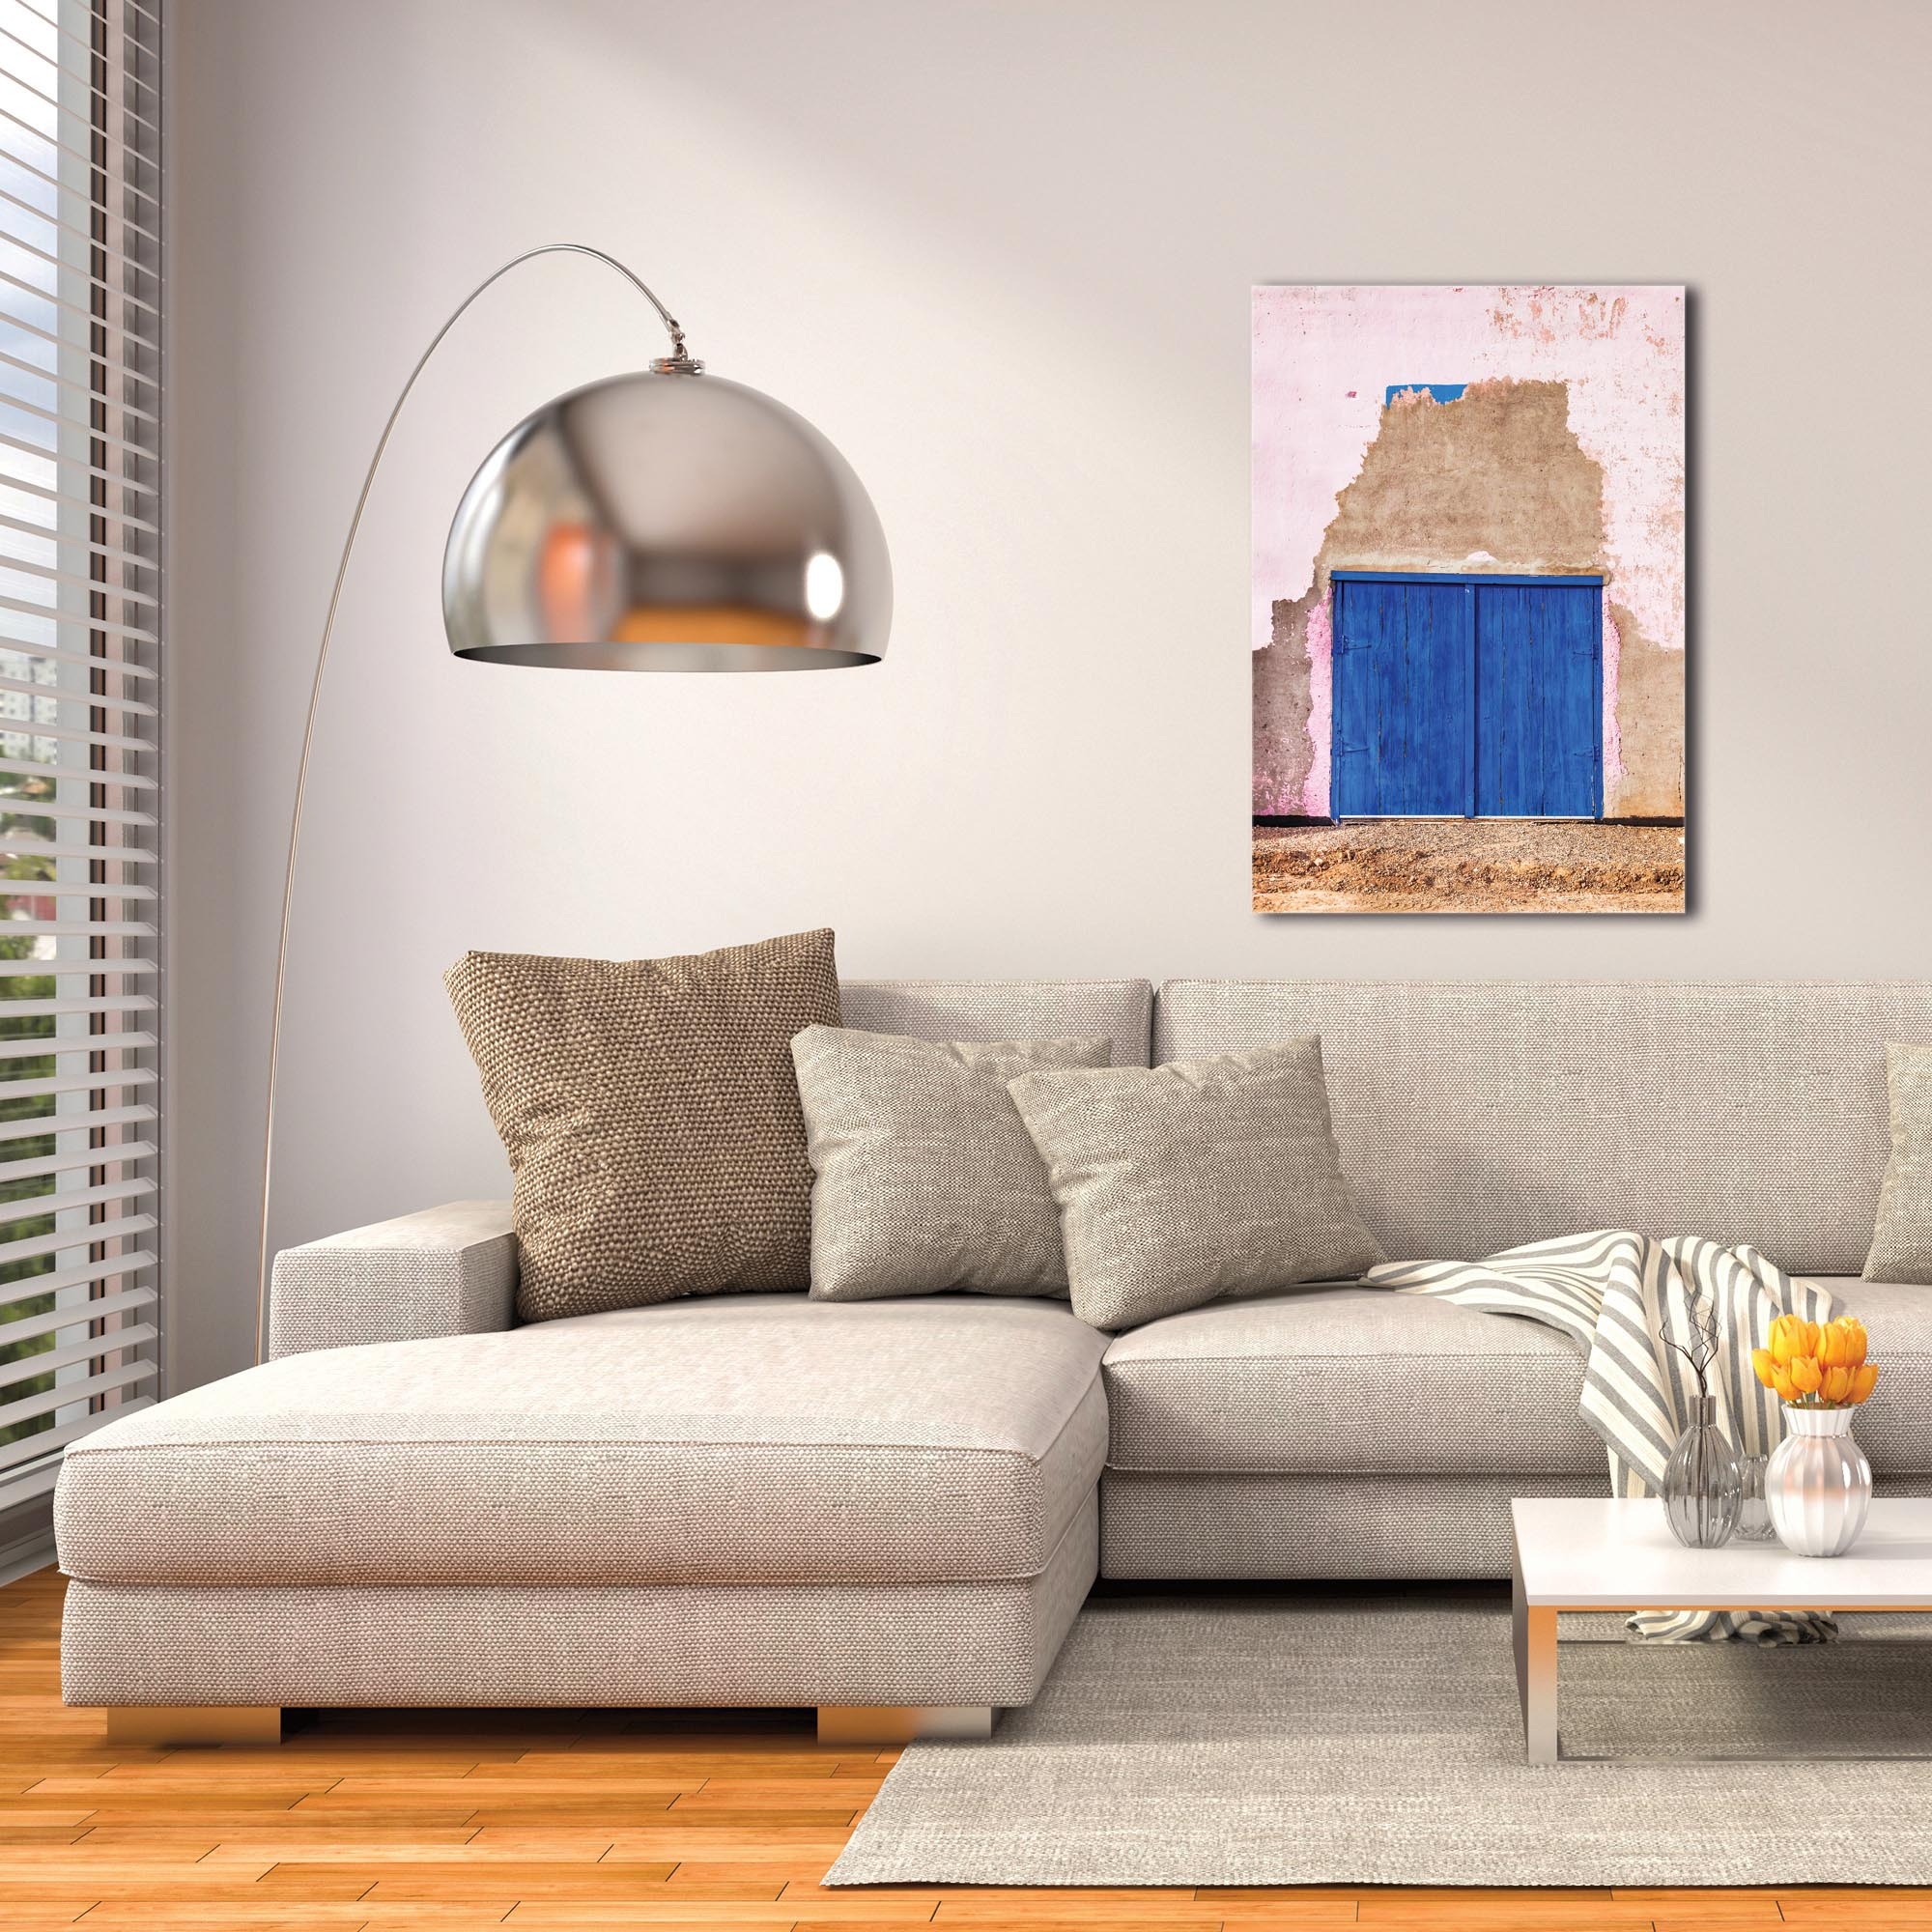 Eclectic Wall Art 'Blue Double Door' - Architecture Decor on Metal or Plexiglass - Image 3